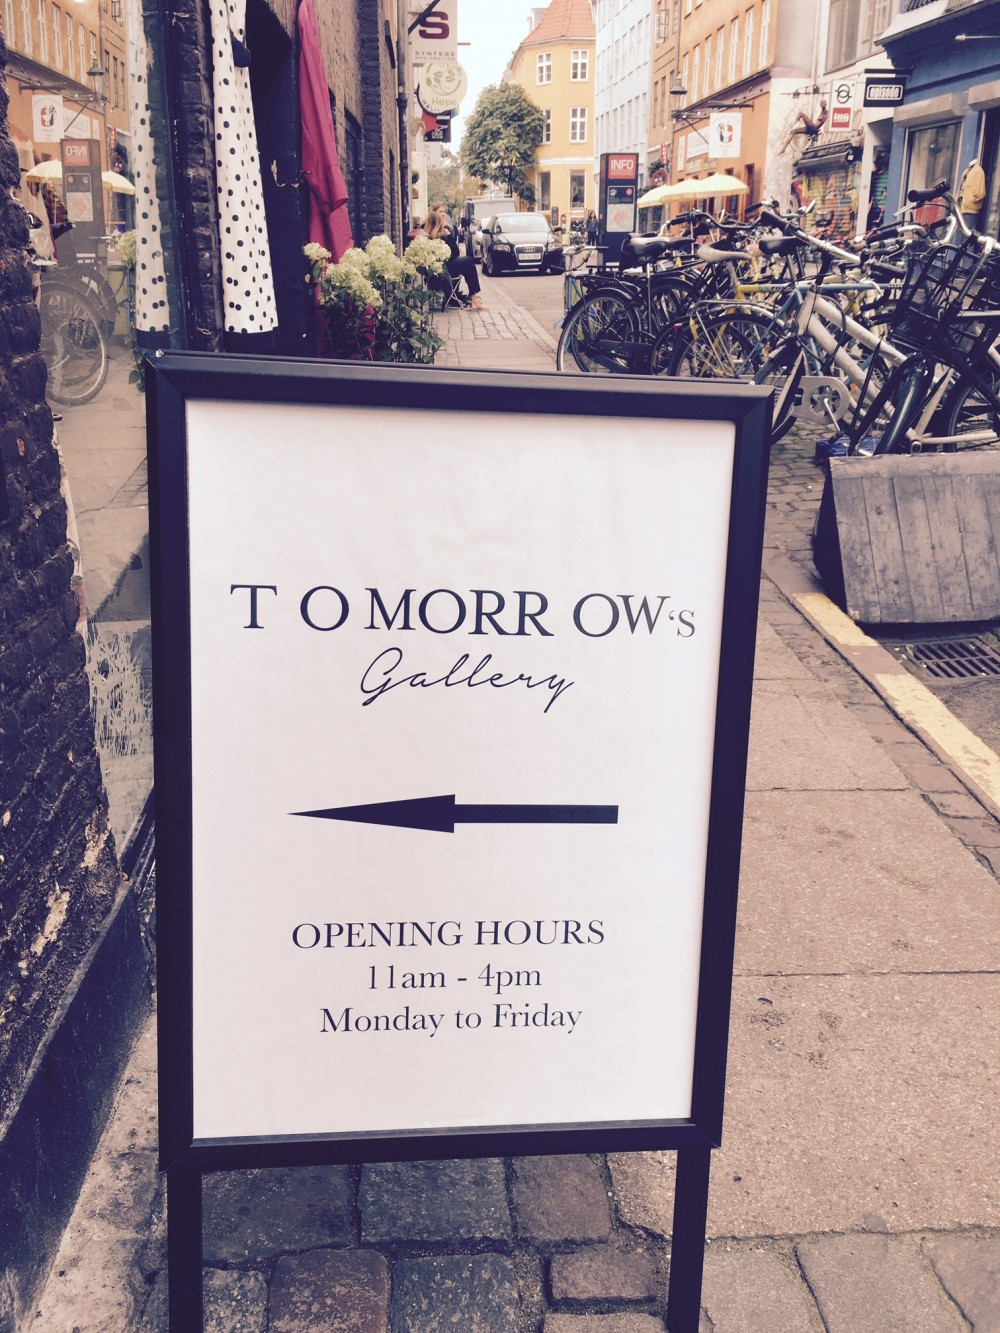 TOMORROWSGALLERYSIGN